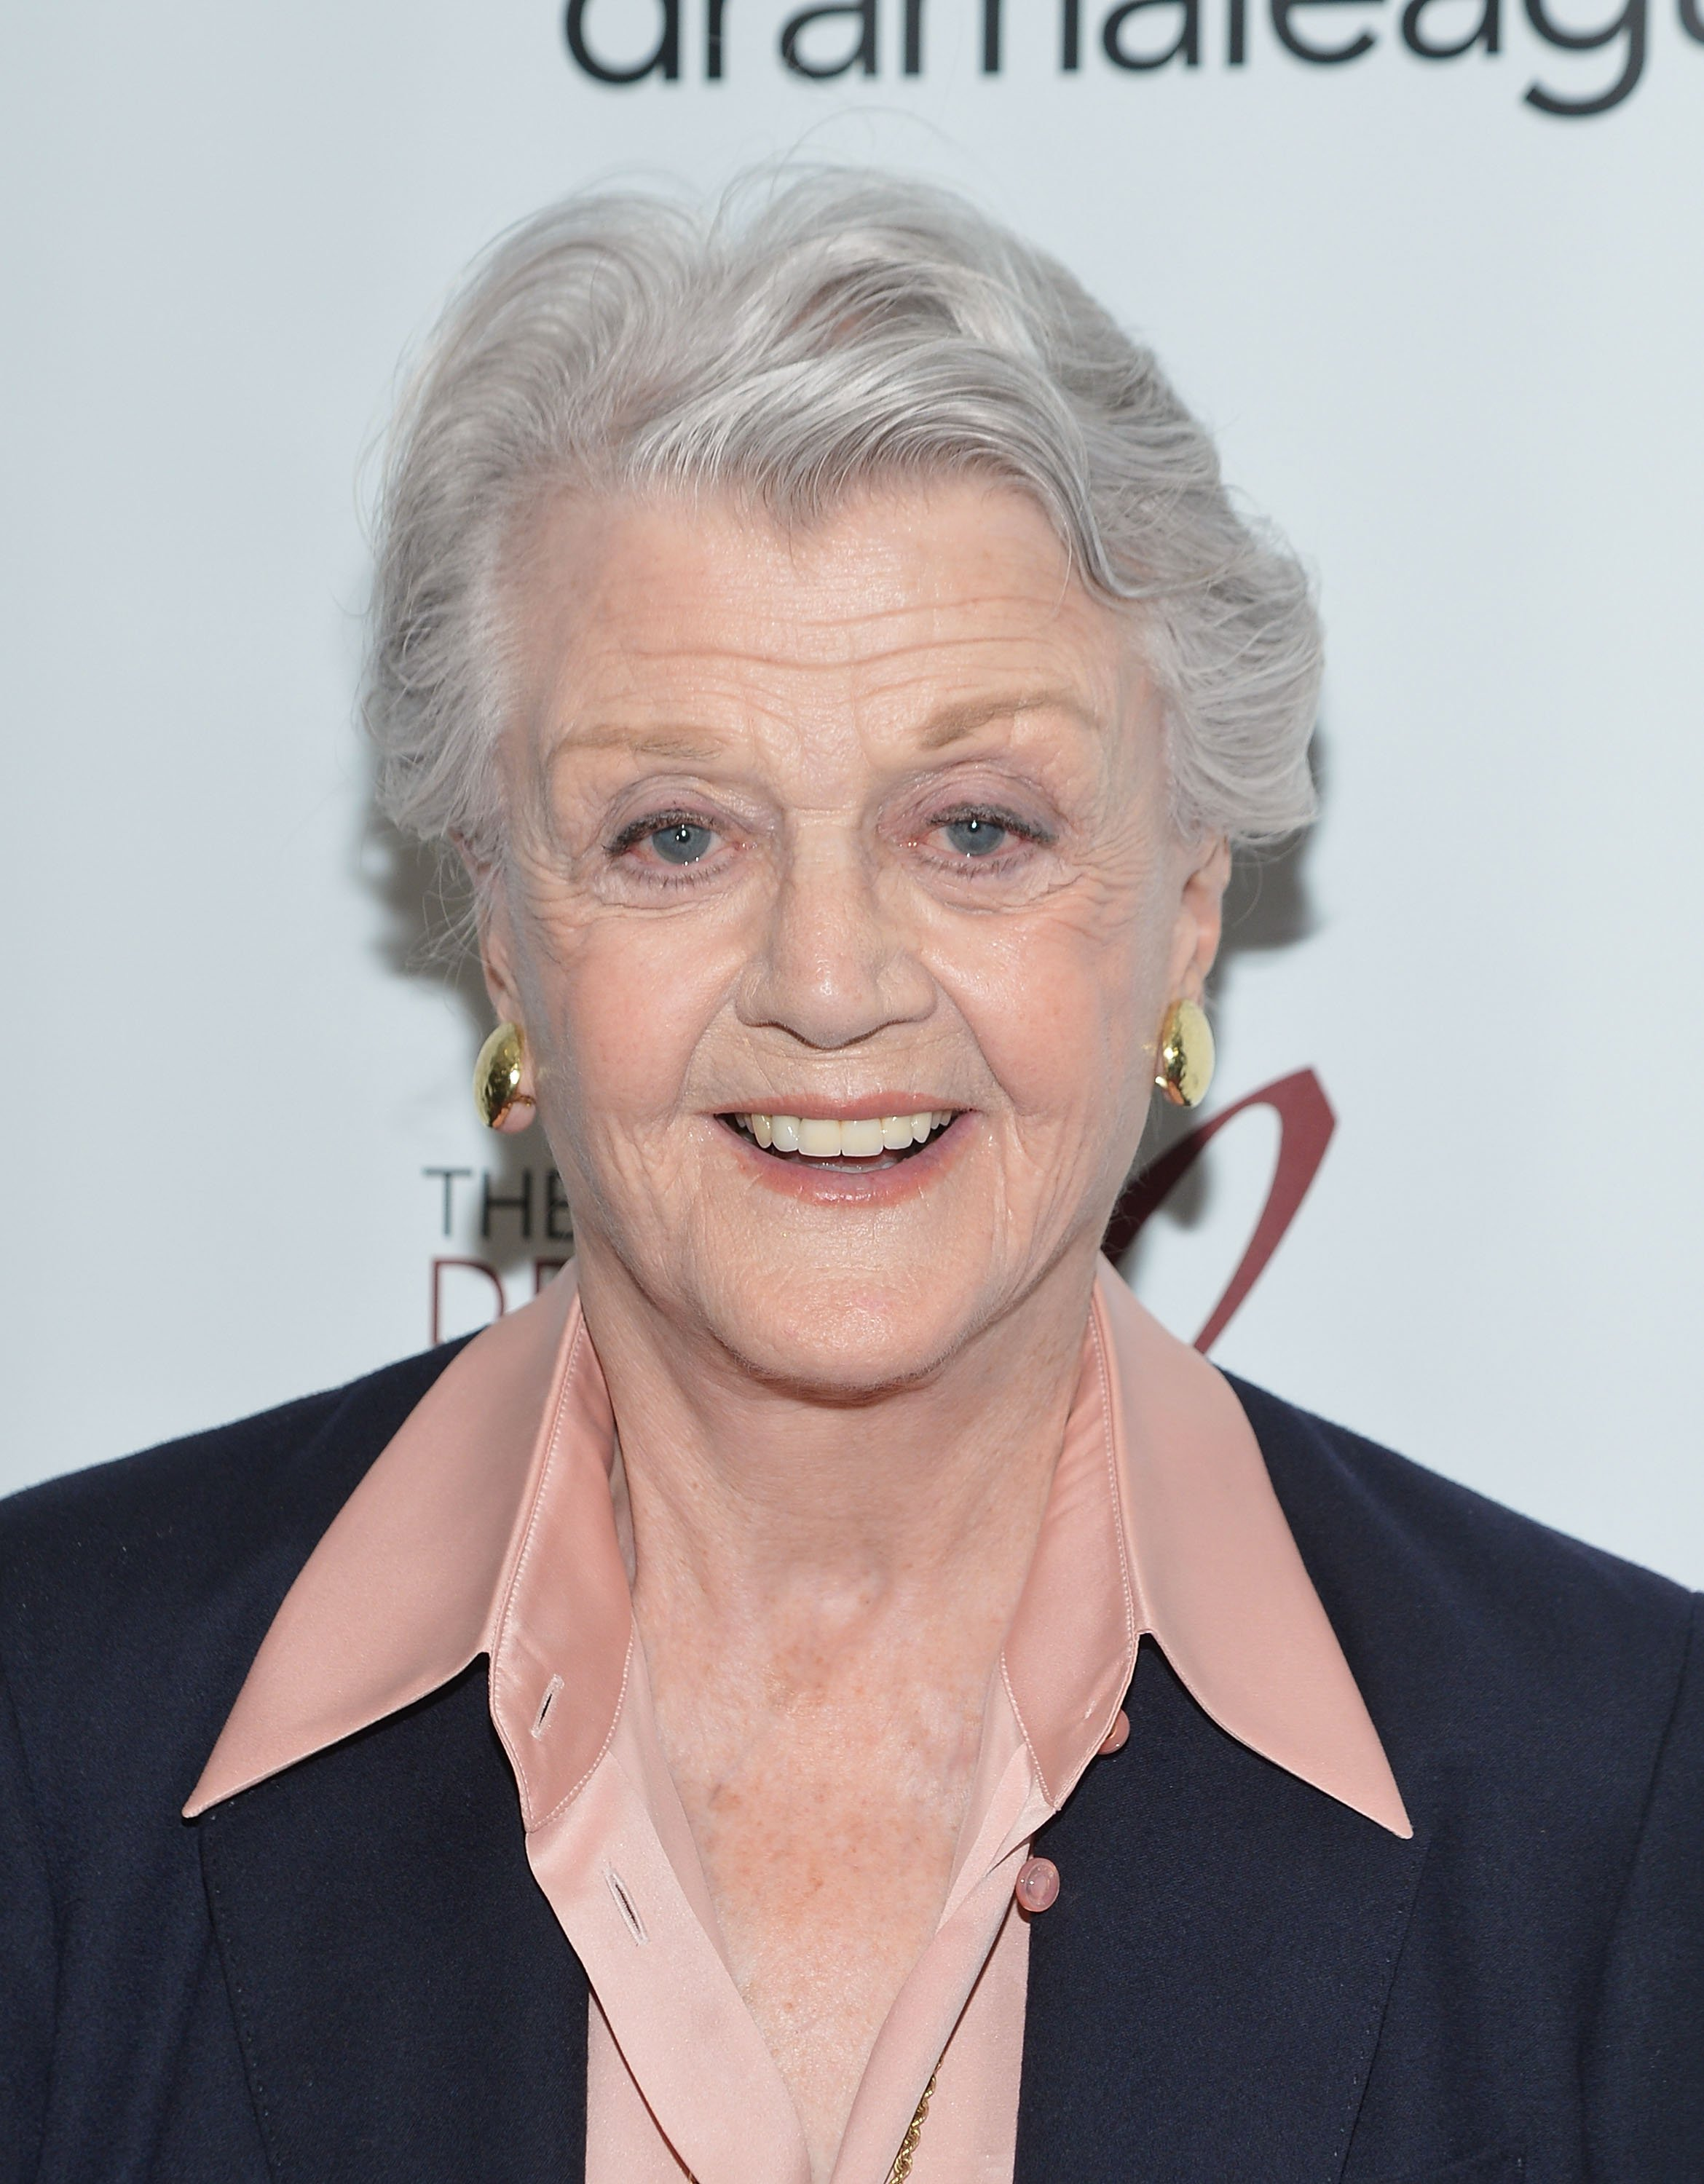 Angela Lansbury on May 18, 2012 in New York City | Source: Getty Images